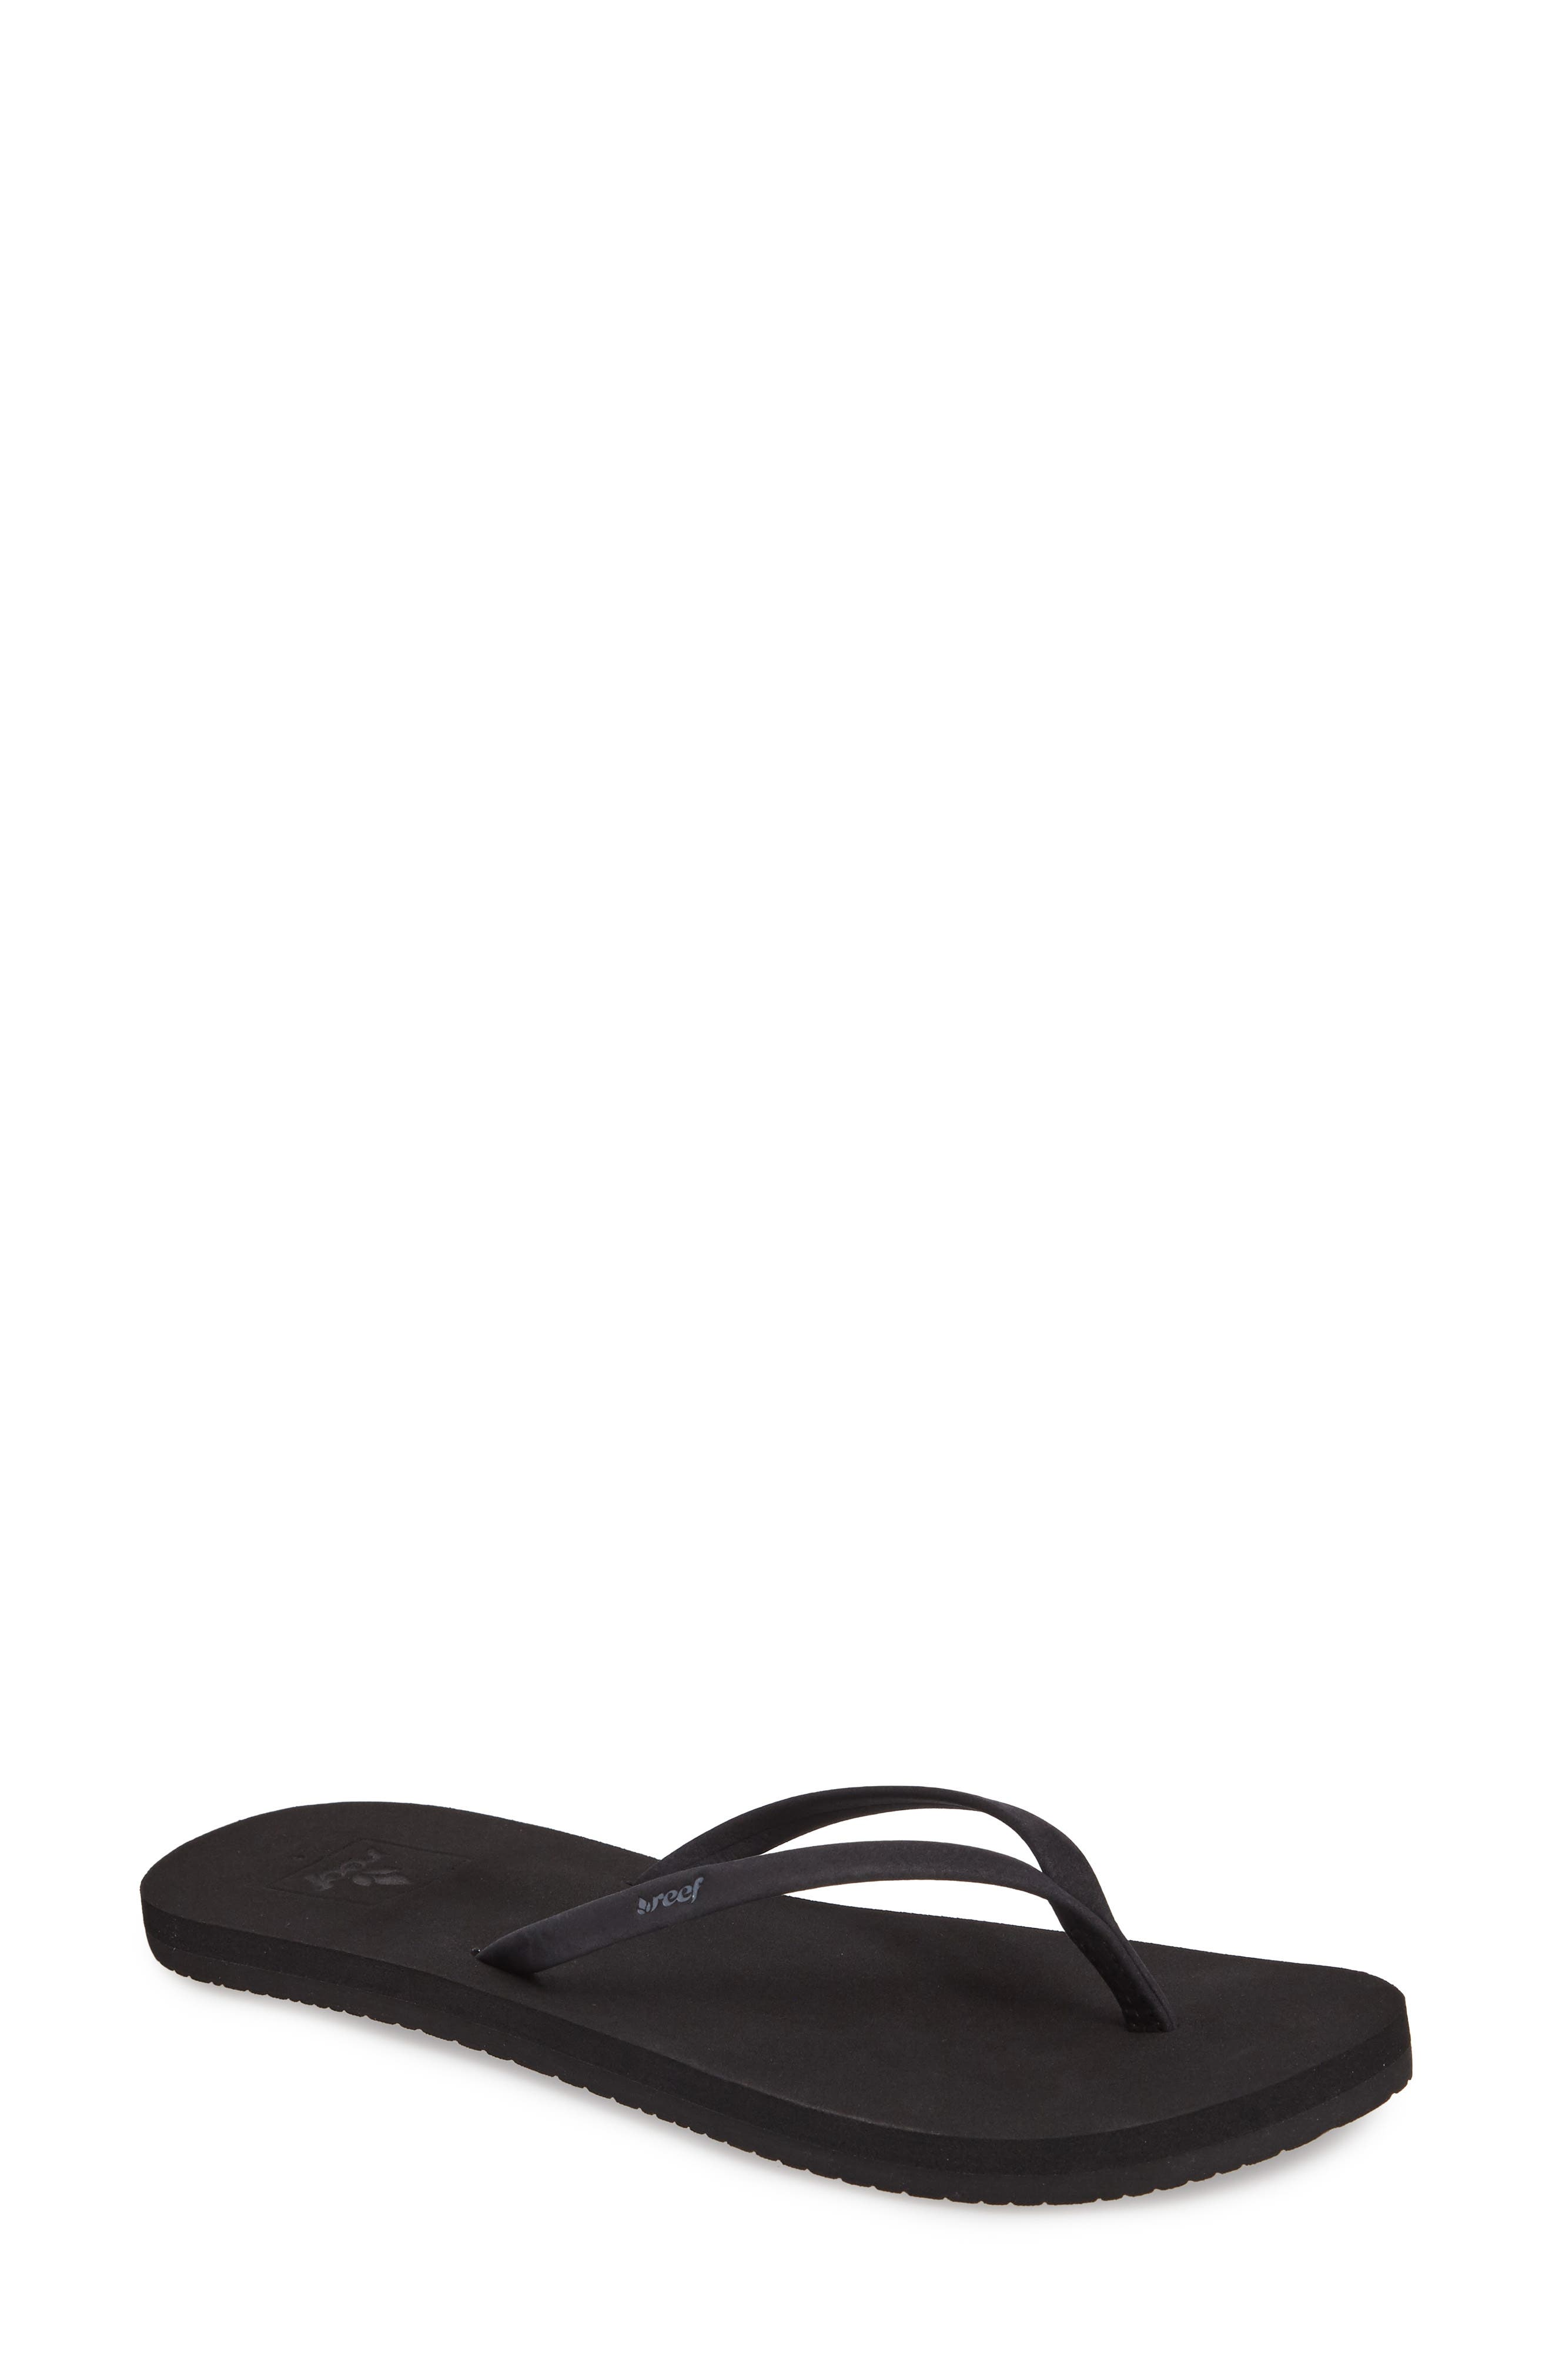 Bliss Nights Flip Flop,                             Main thumbnail 2, color,